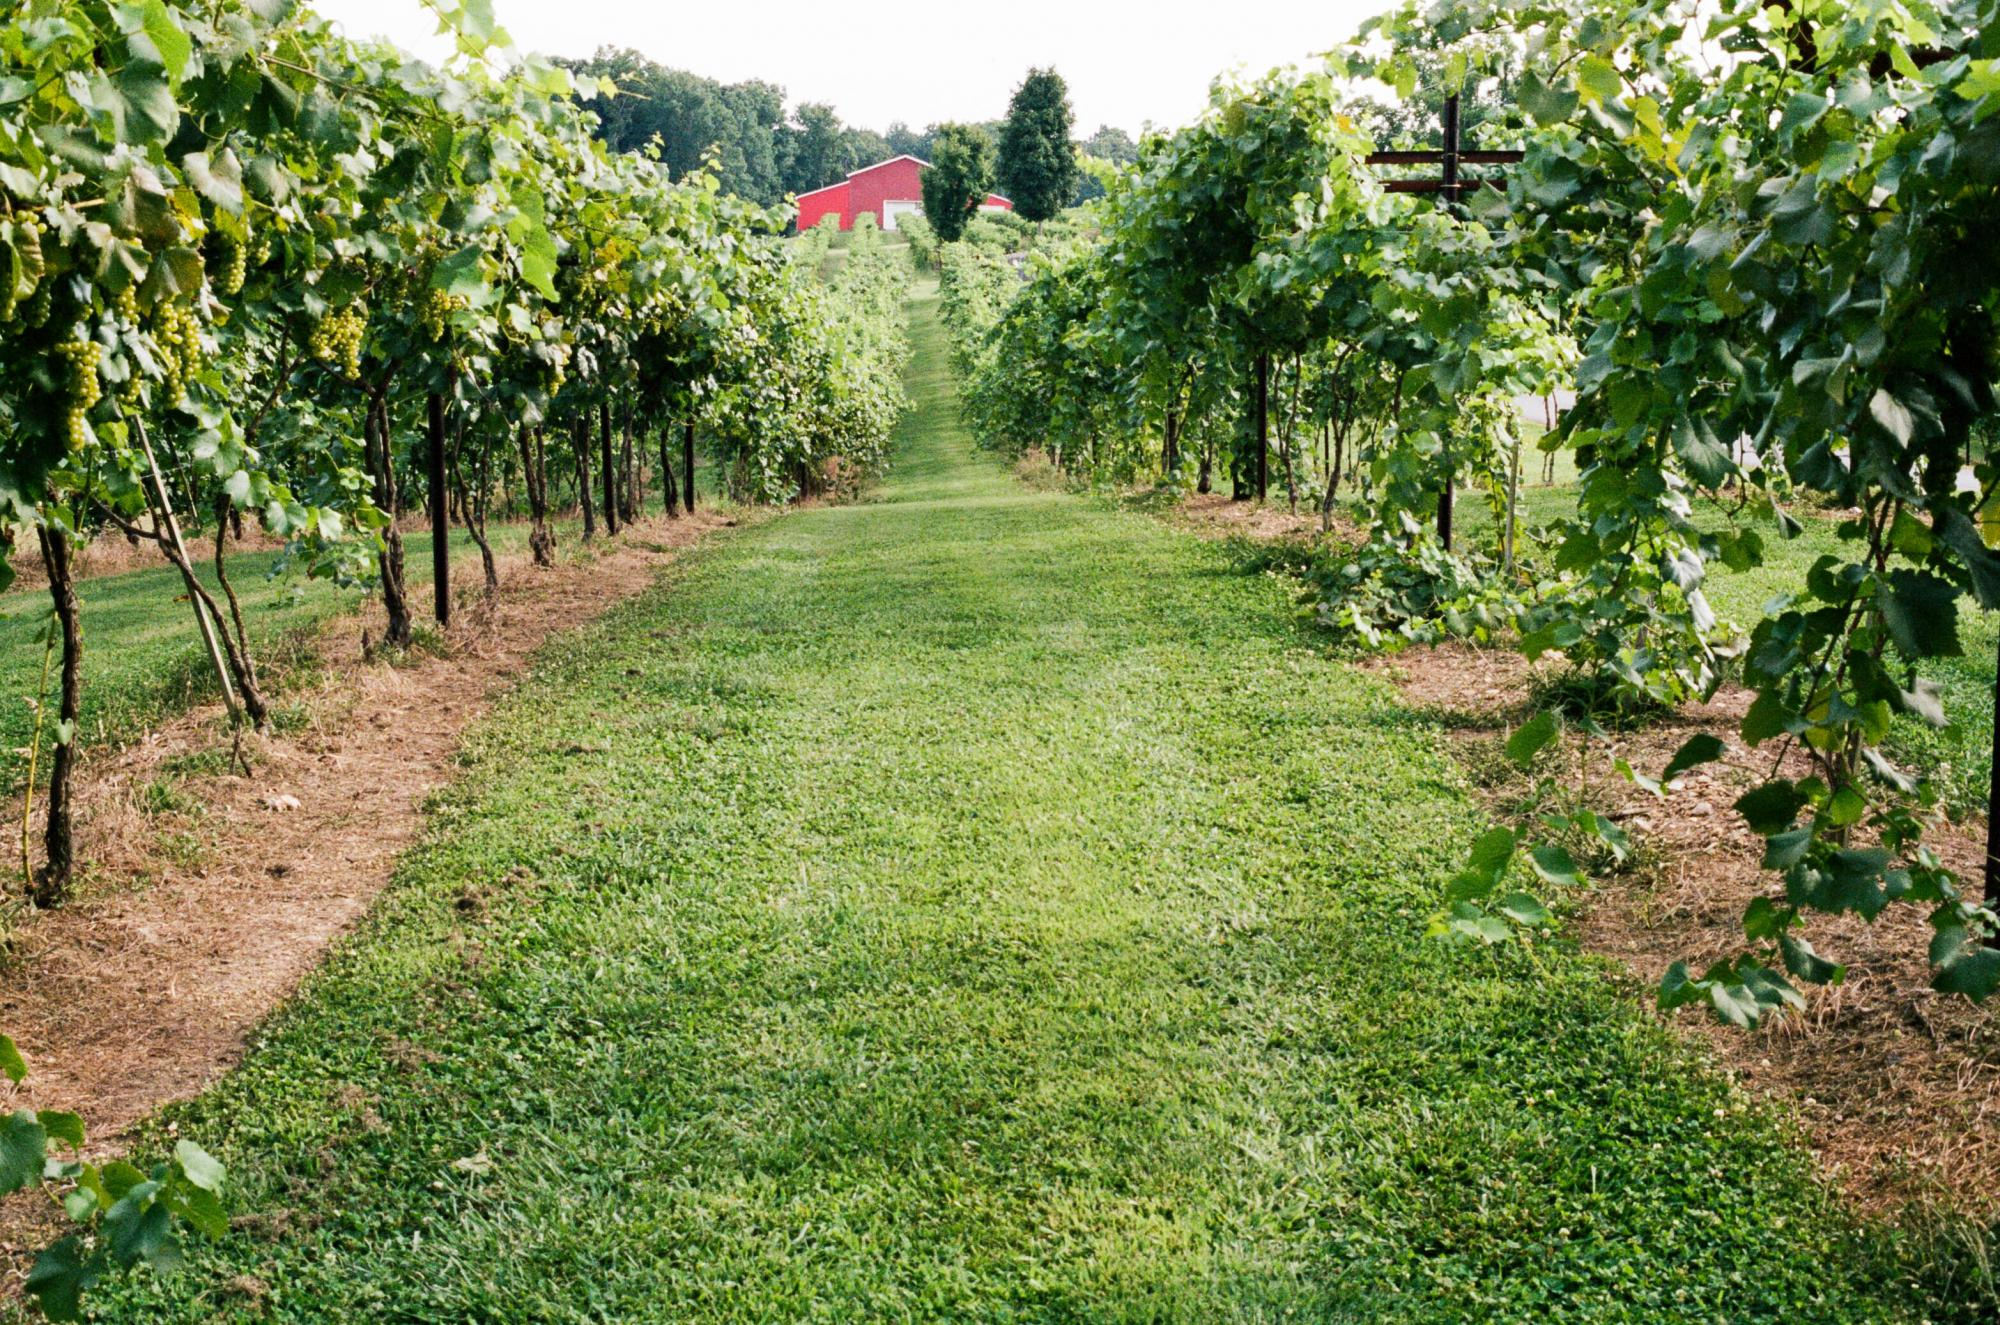 Amber Falls Winery and Cellars in Hampshire, Tennessee